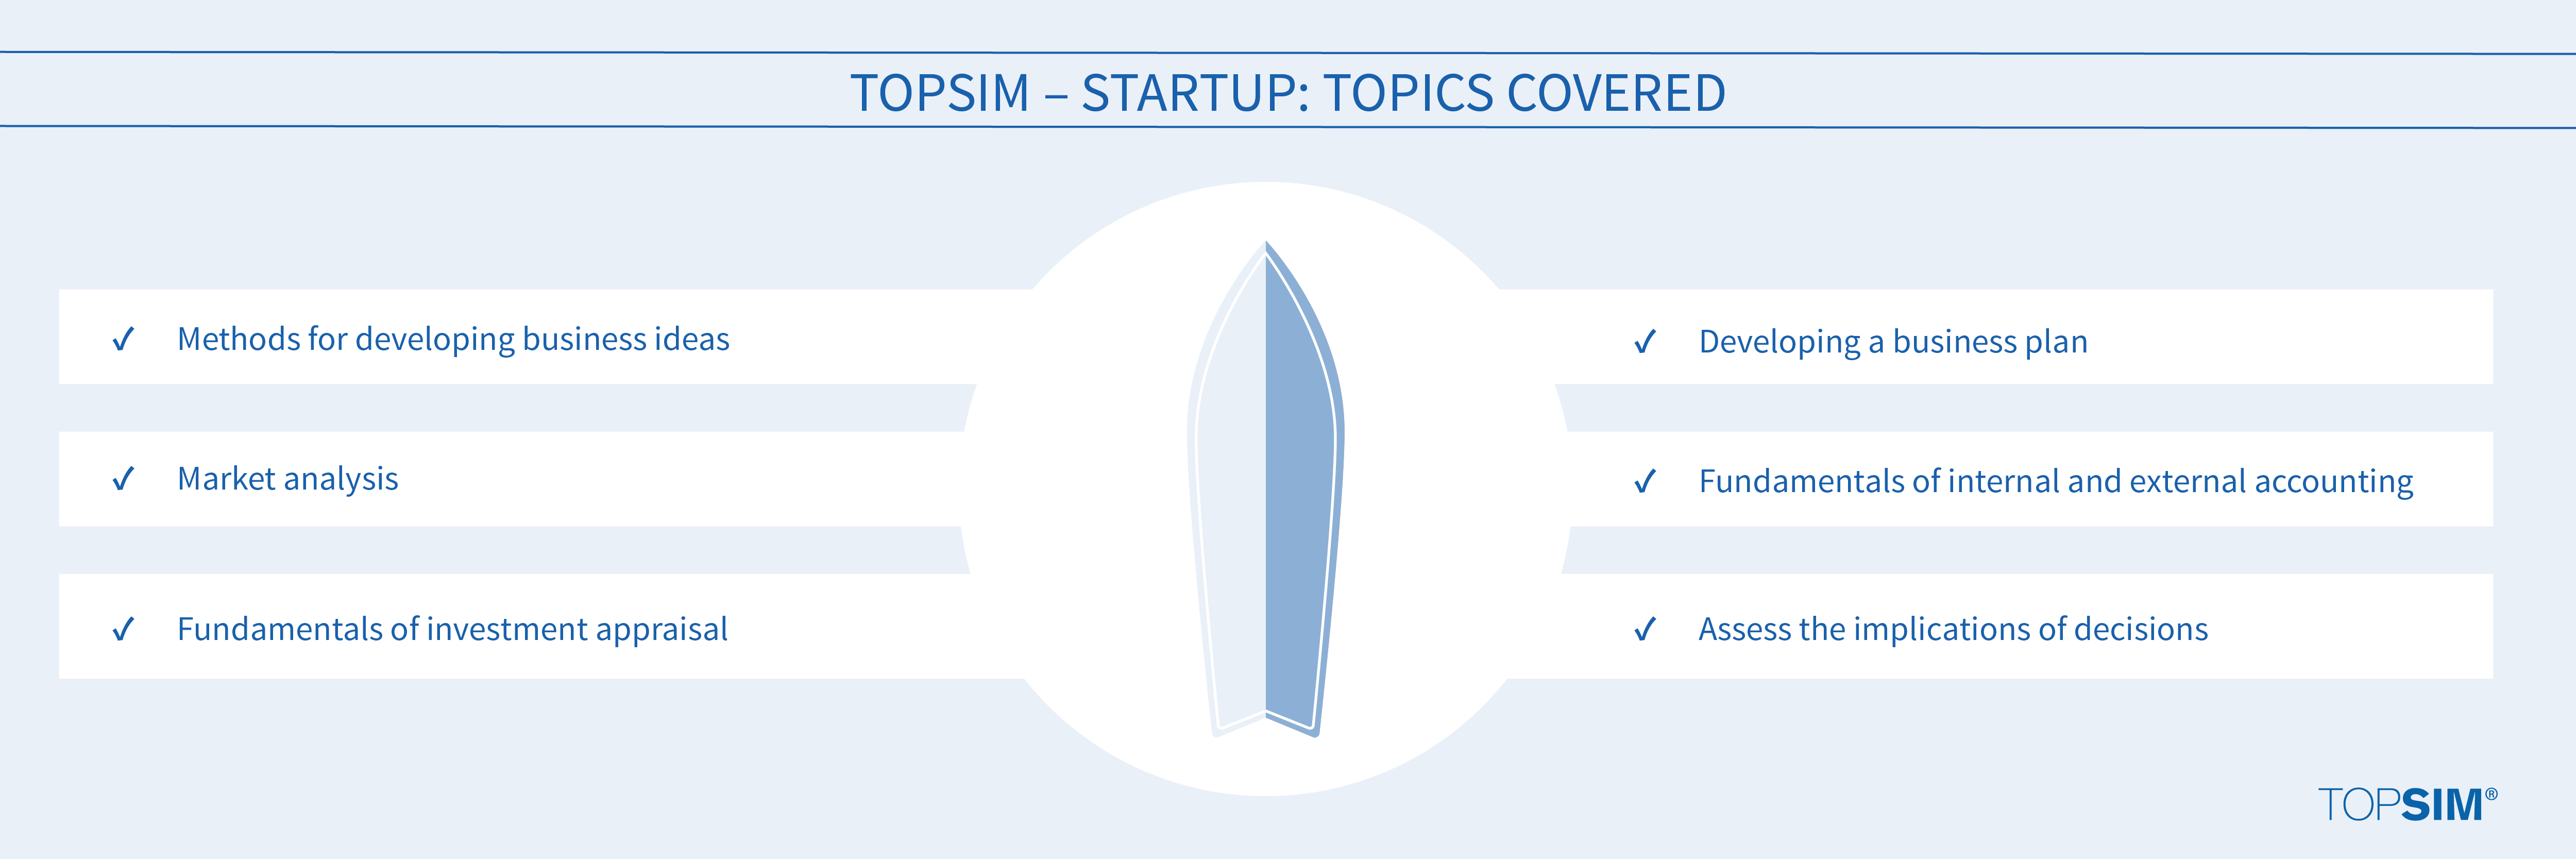 Topics covered Startup